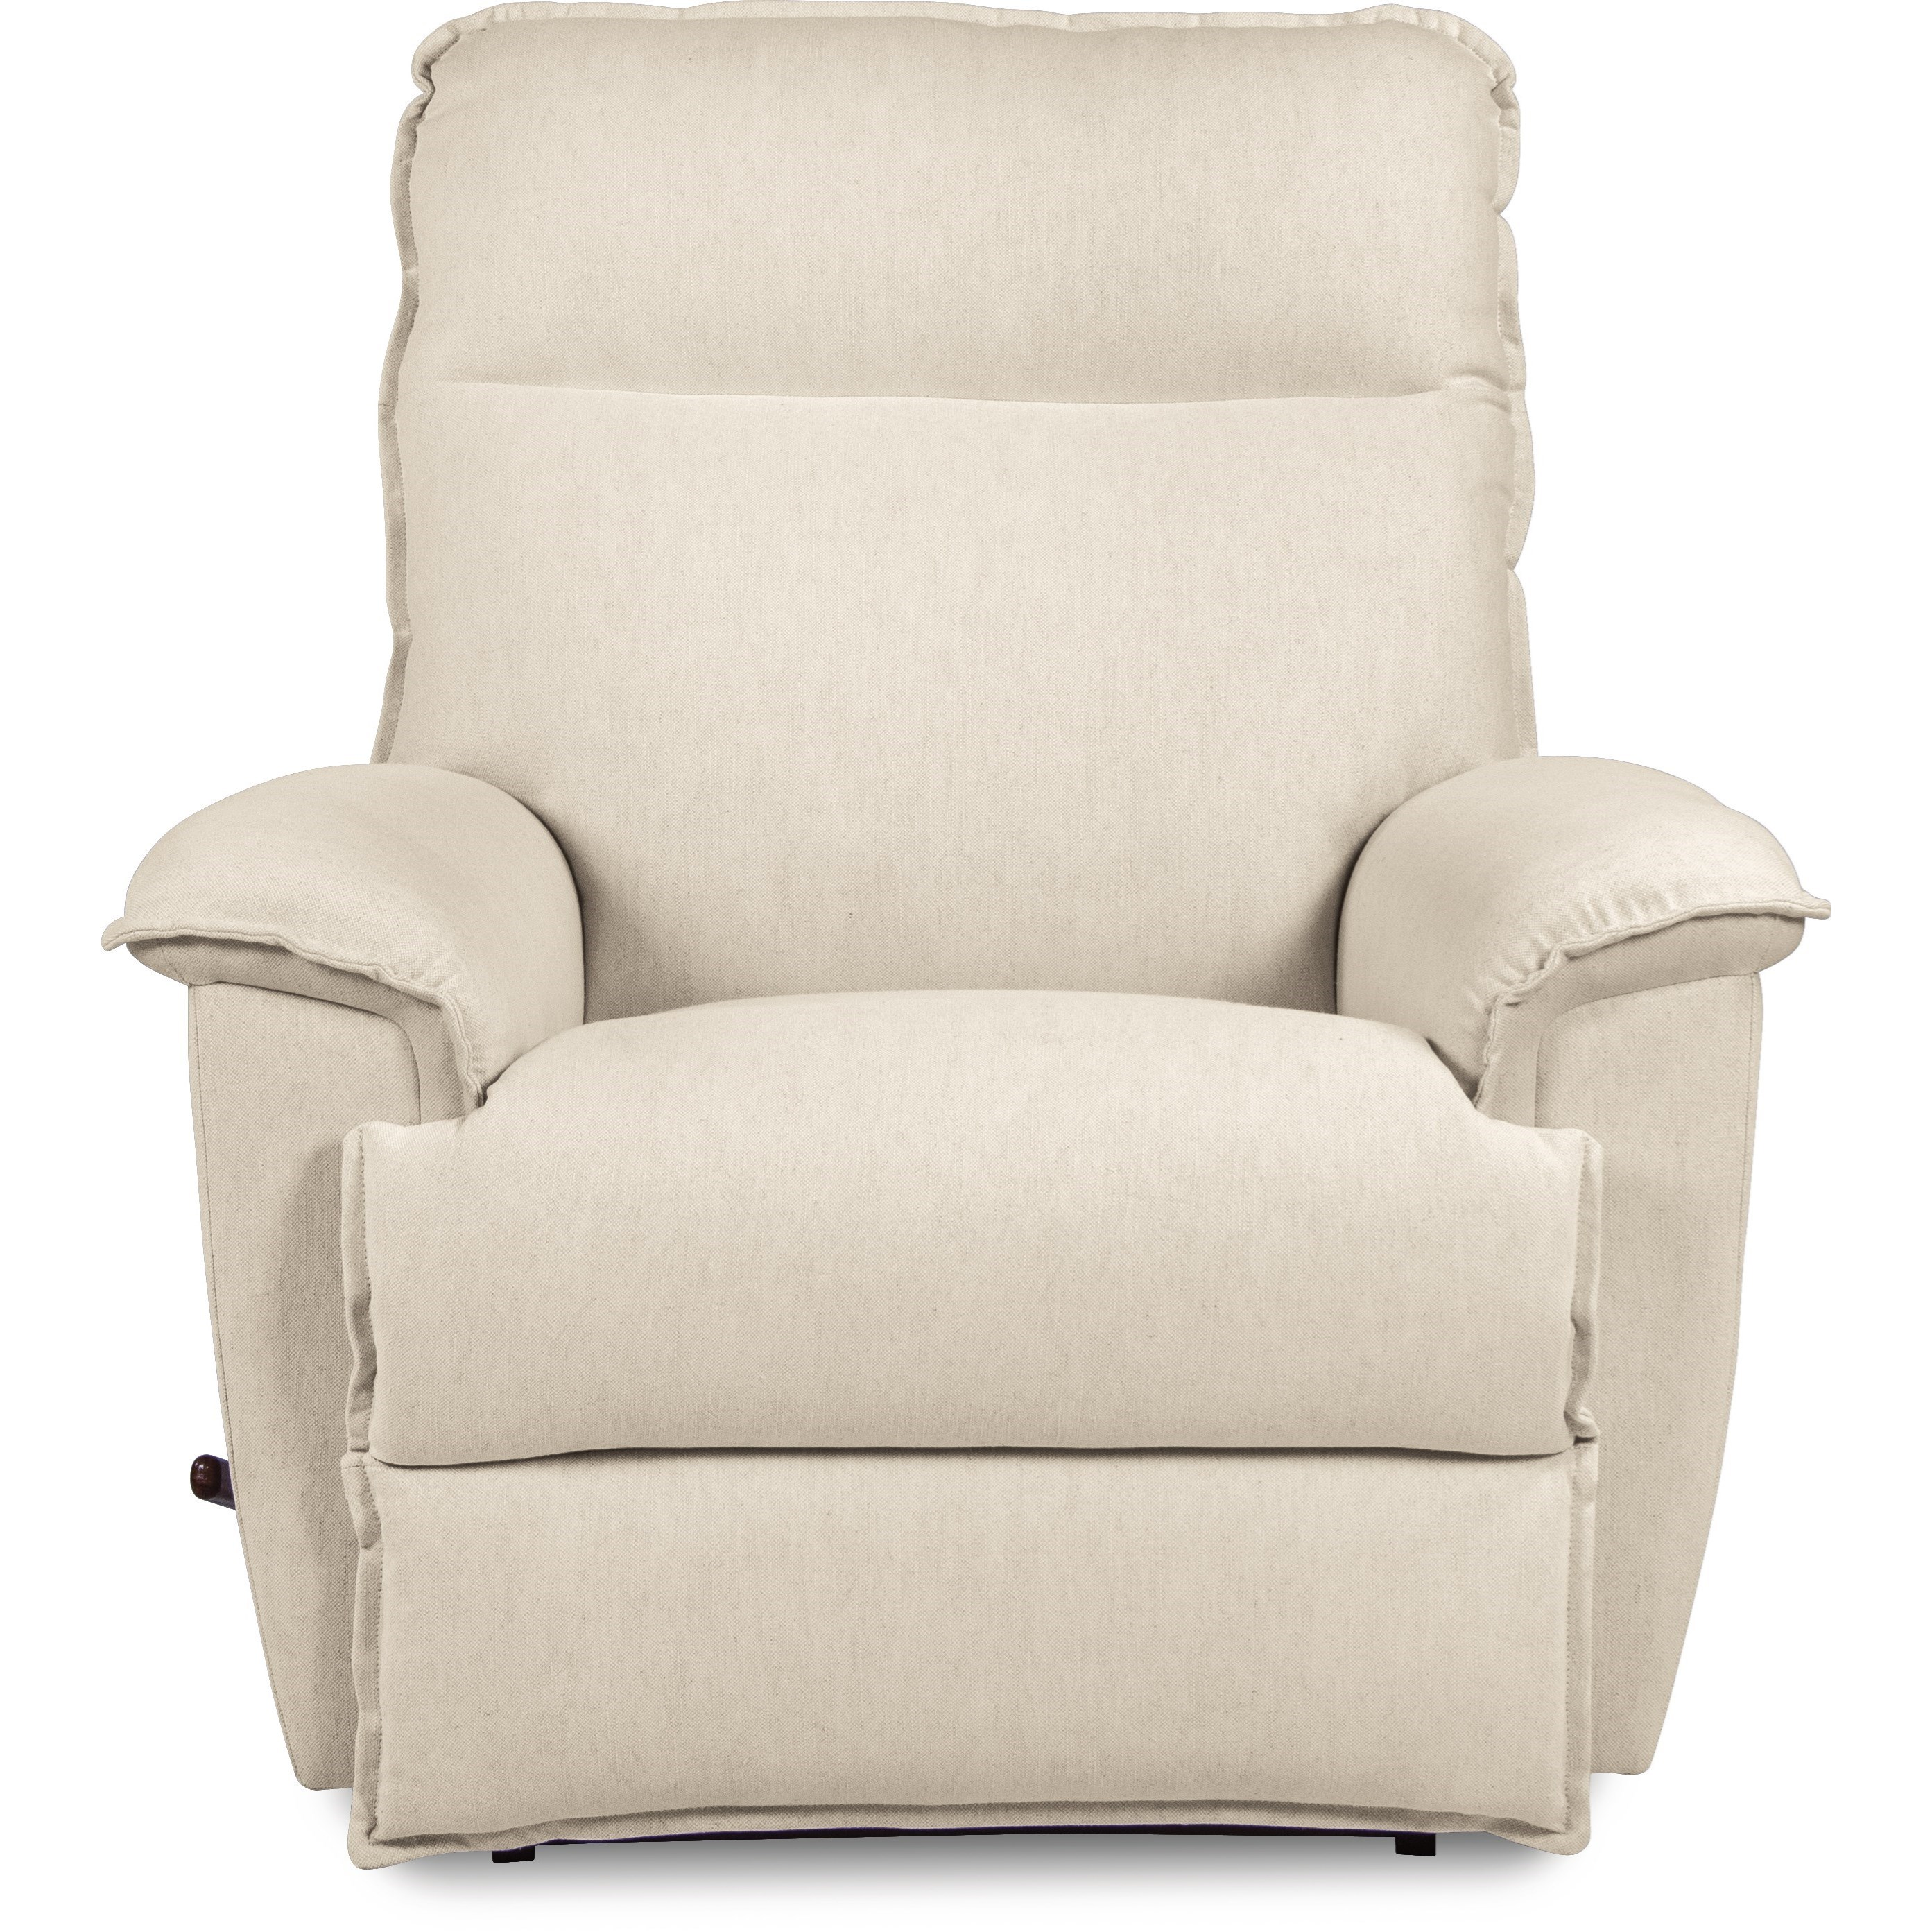 La Z Boy Jay Rocking Recliner | Jordan's Home Furnishings